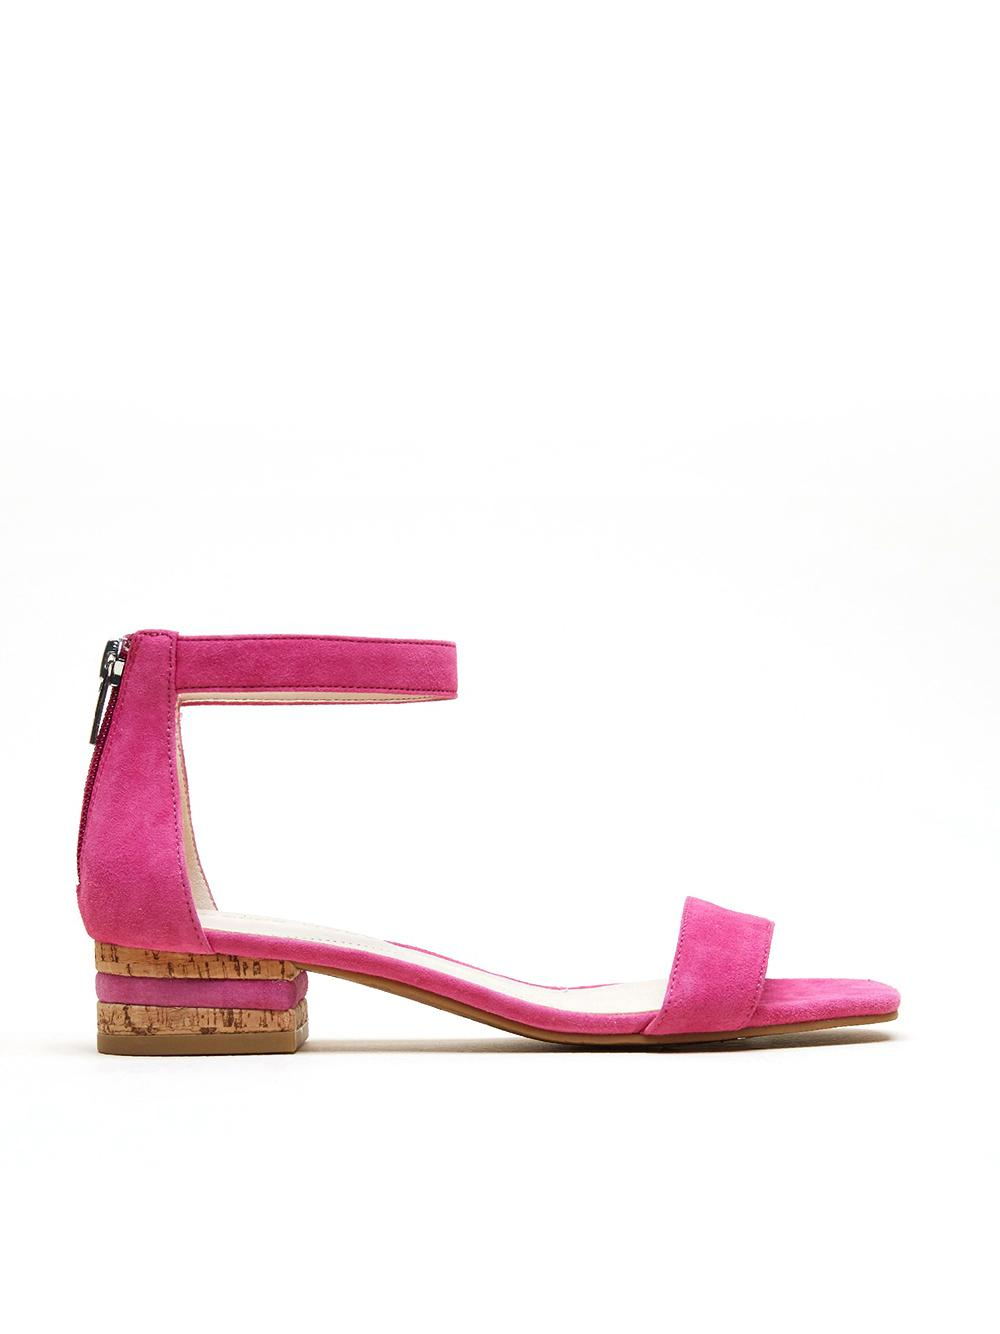 Suede Sandal With Cork Heel Item # NICOLE2-SUE